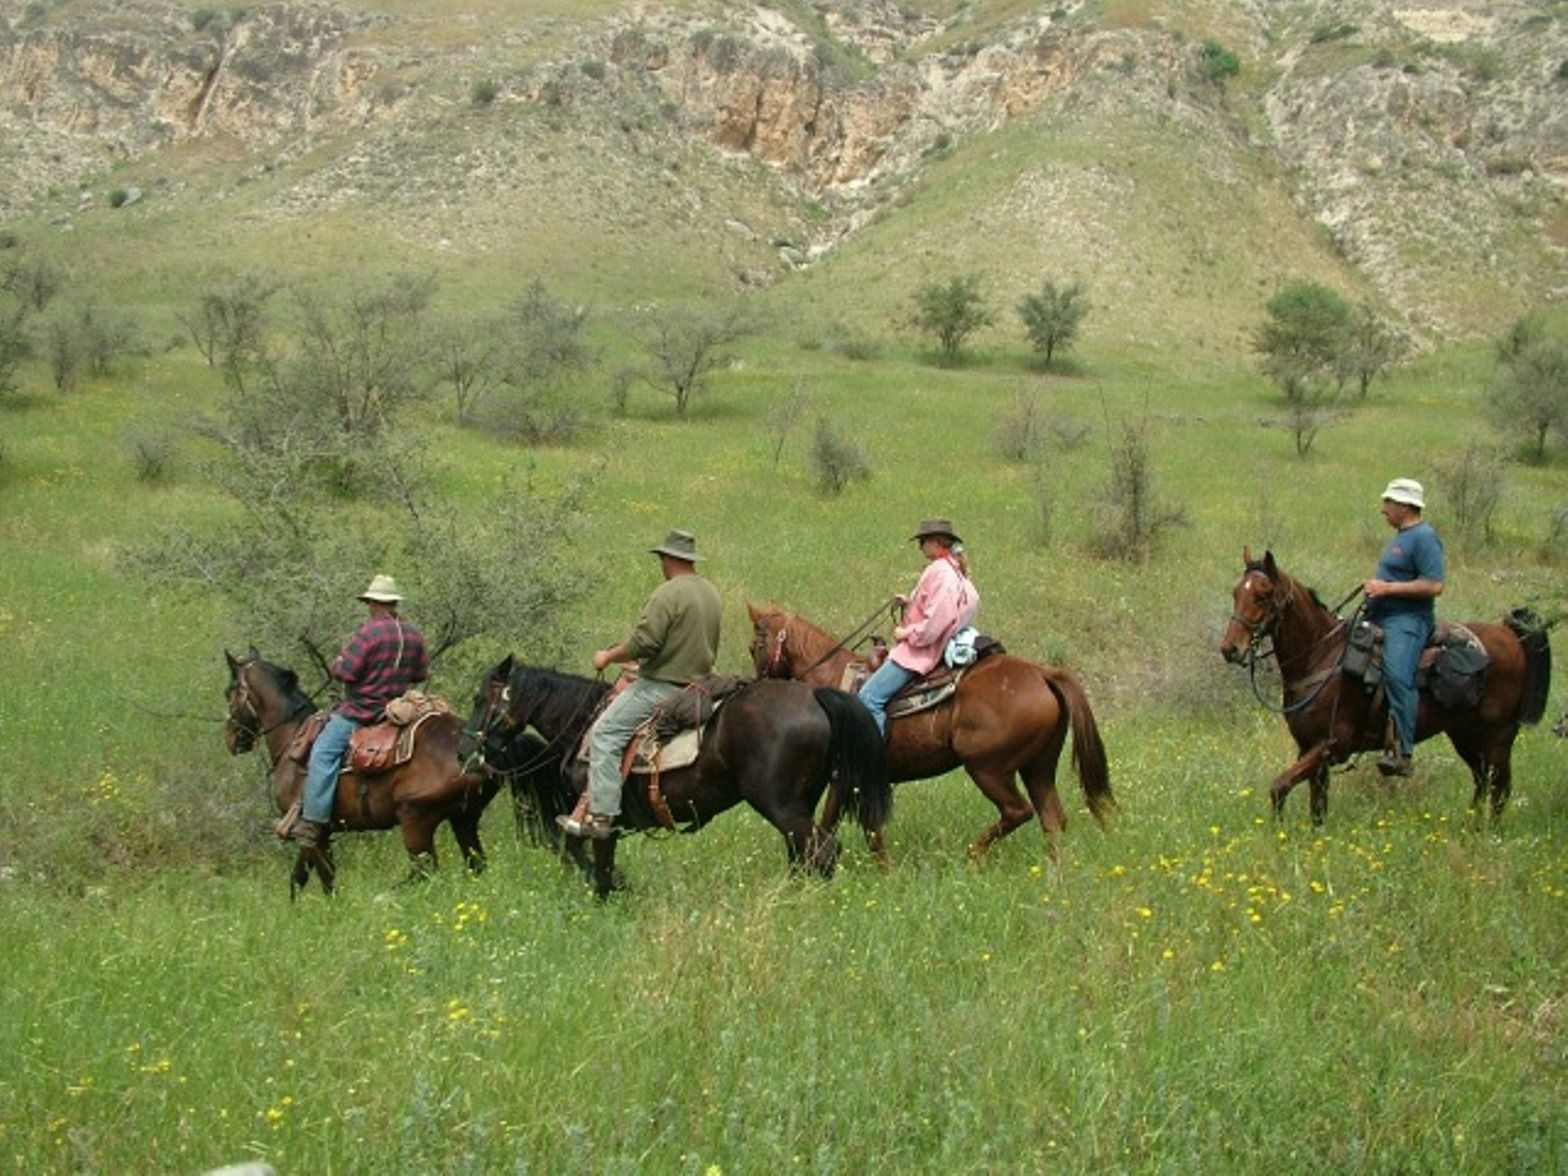 Horses on the Golan Trail. Photo by Israel Eshed